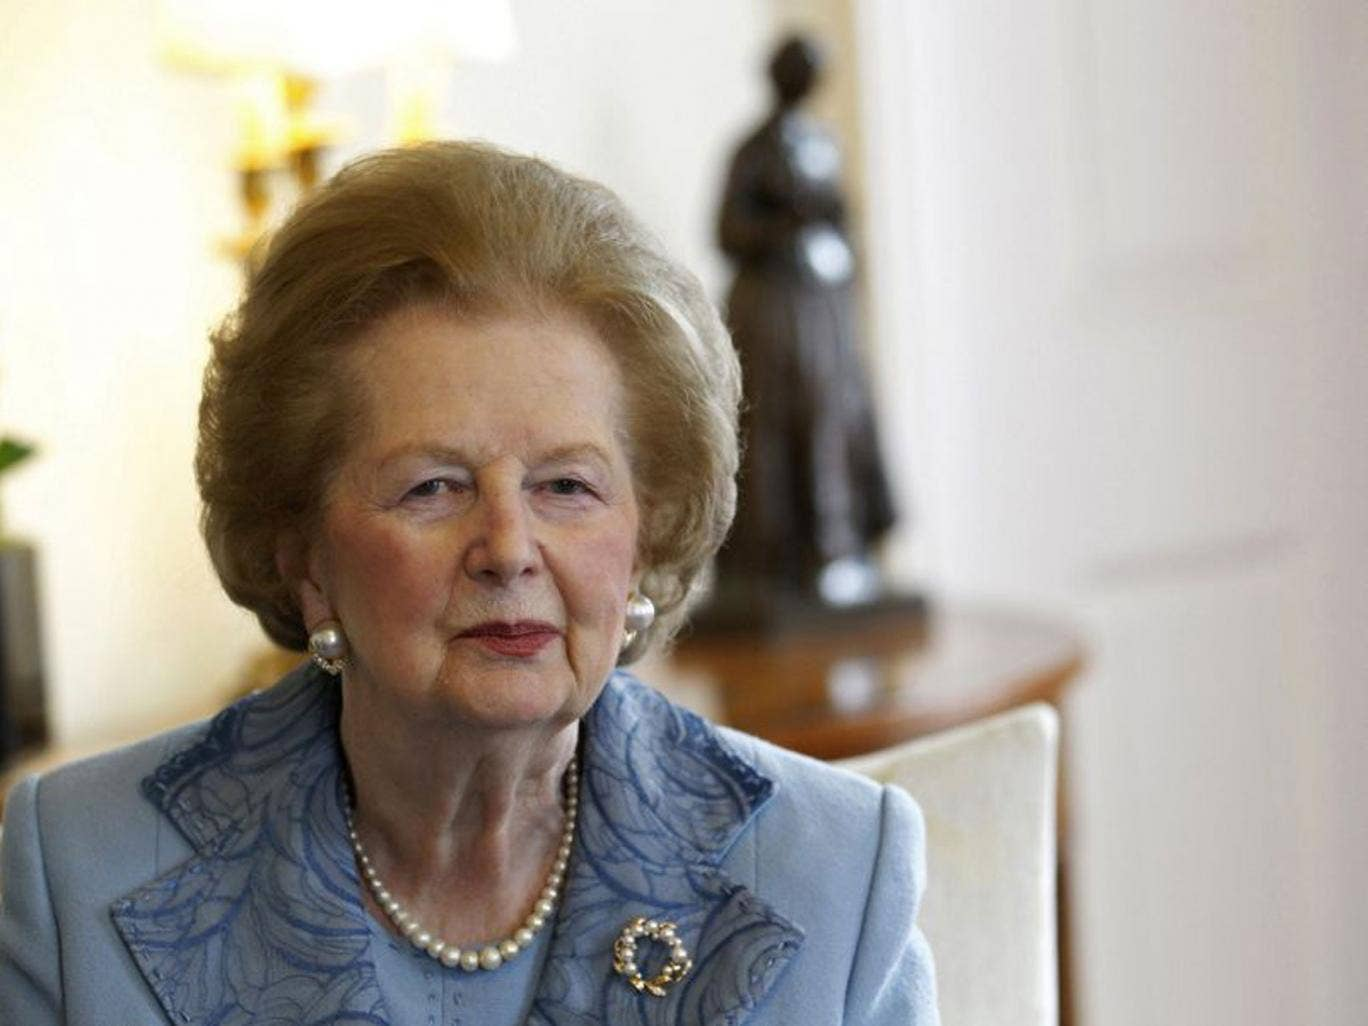 Baroness Thatcher was not well enough to join the Queen for a lunch with former and serving prime ministers as part of the Diamond Jubilee this summer